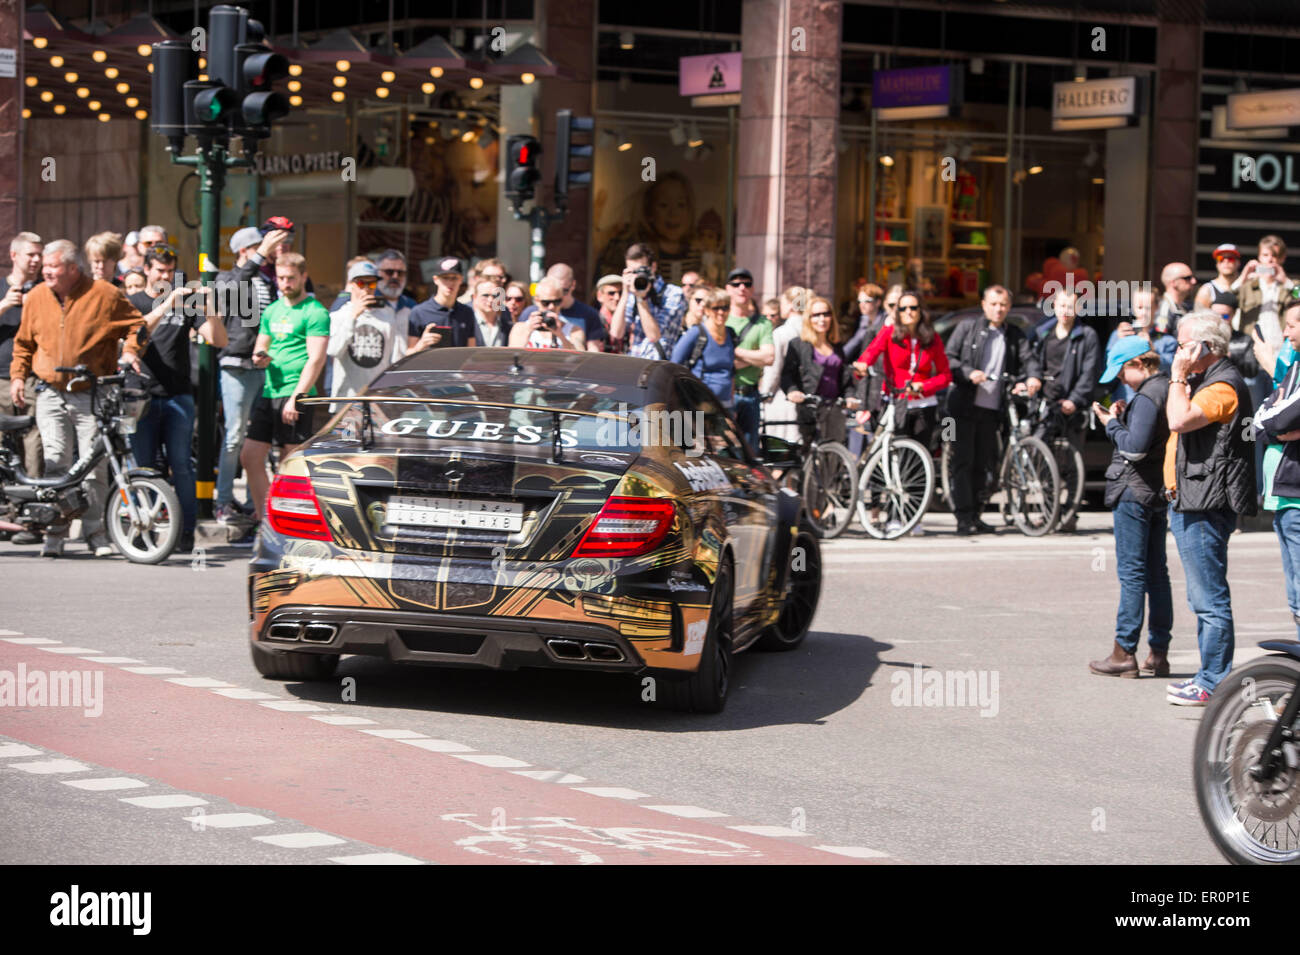 Street view Stockholm Gumball 3000 2015 - Stock Image